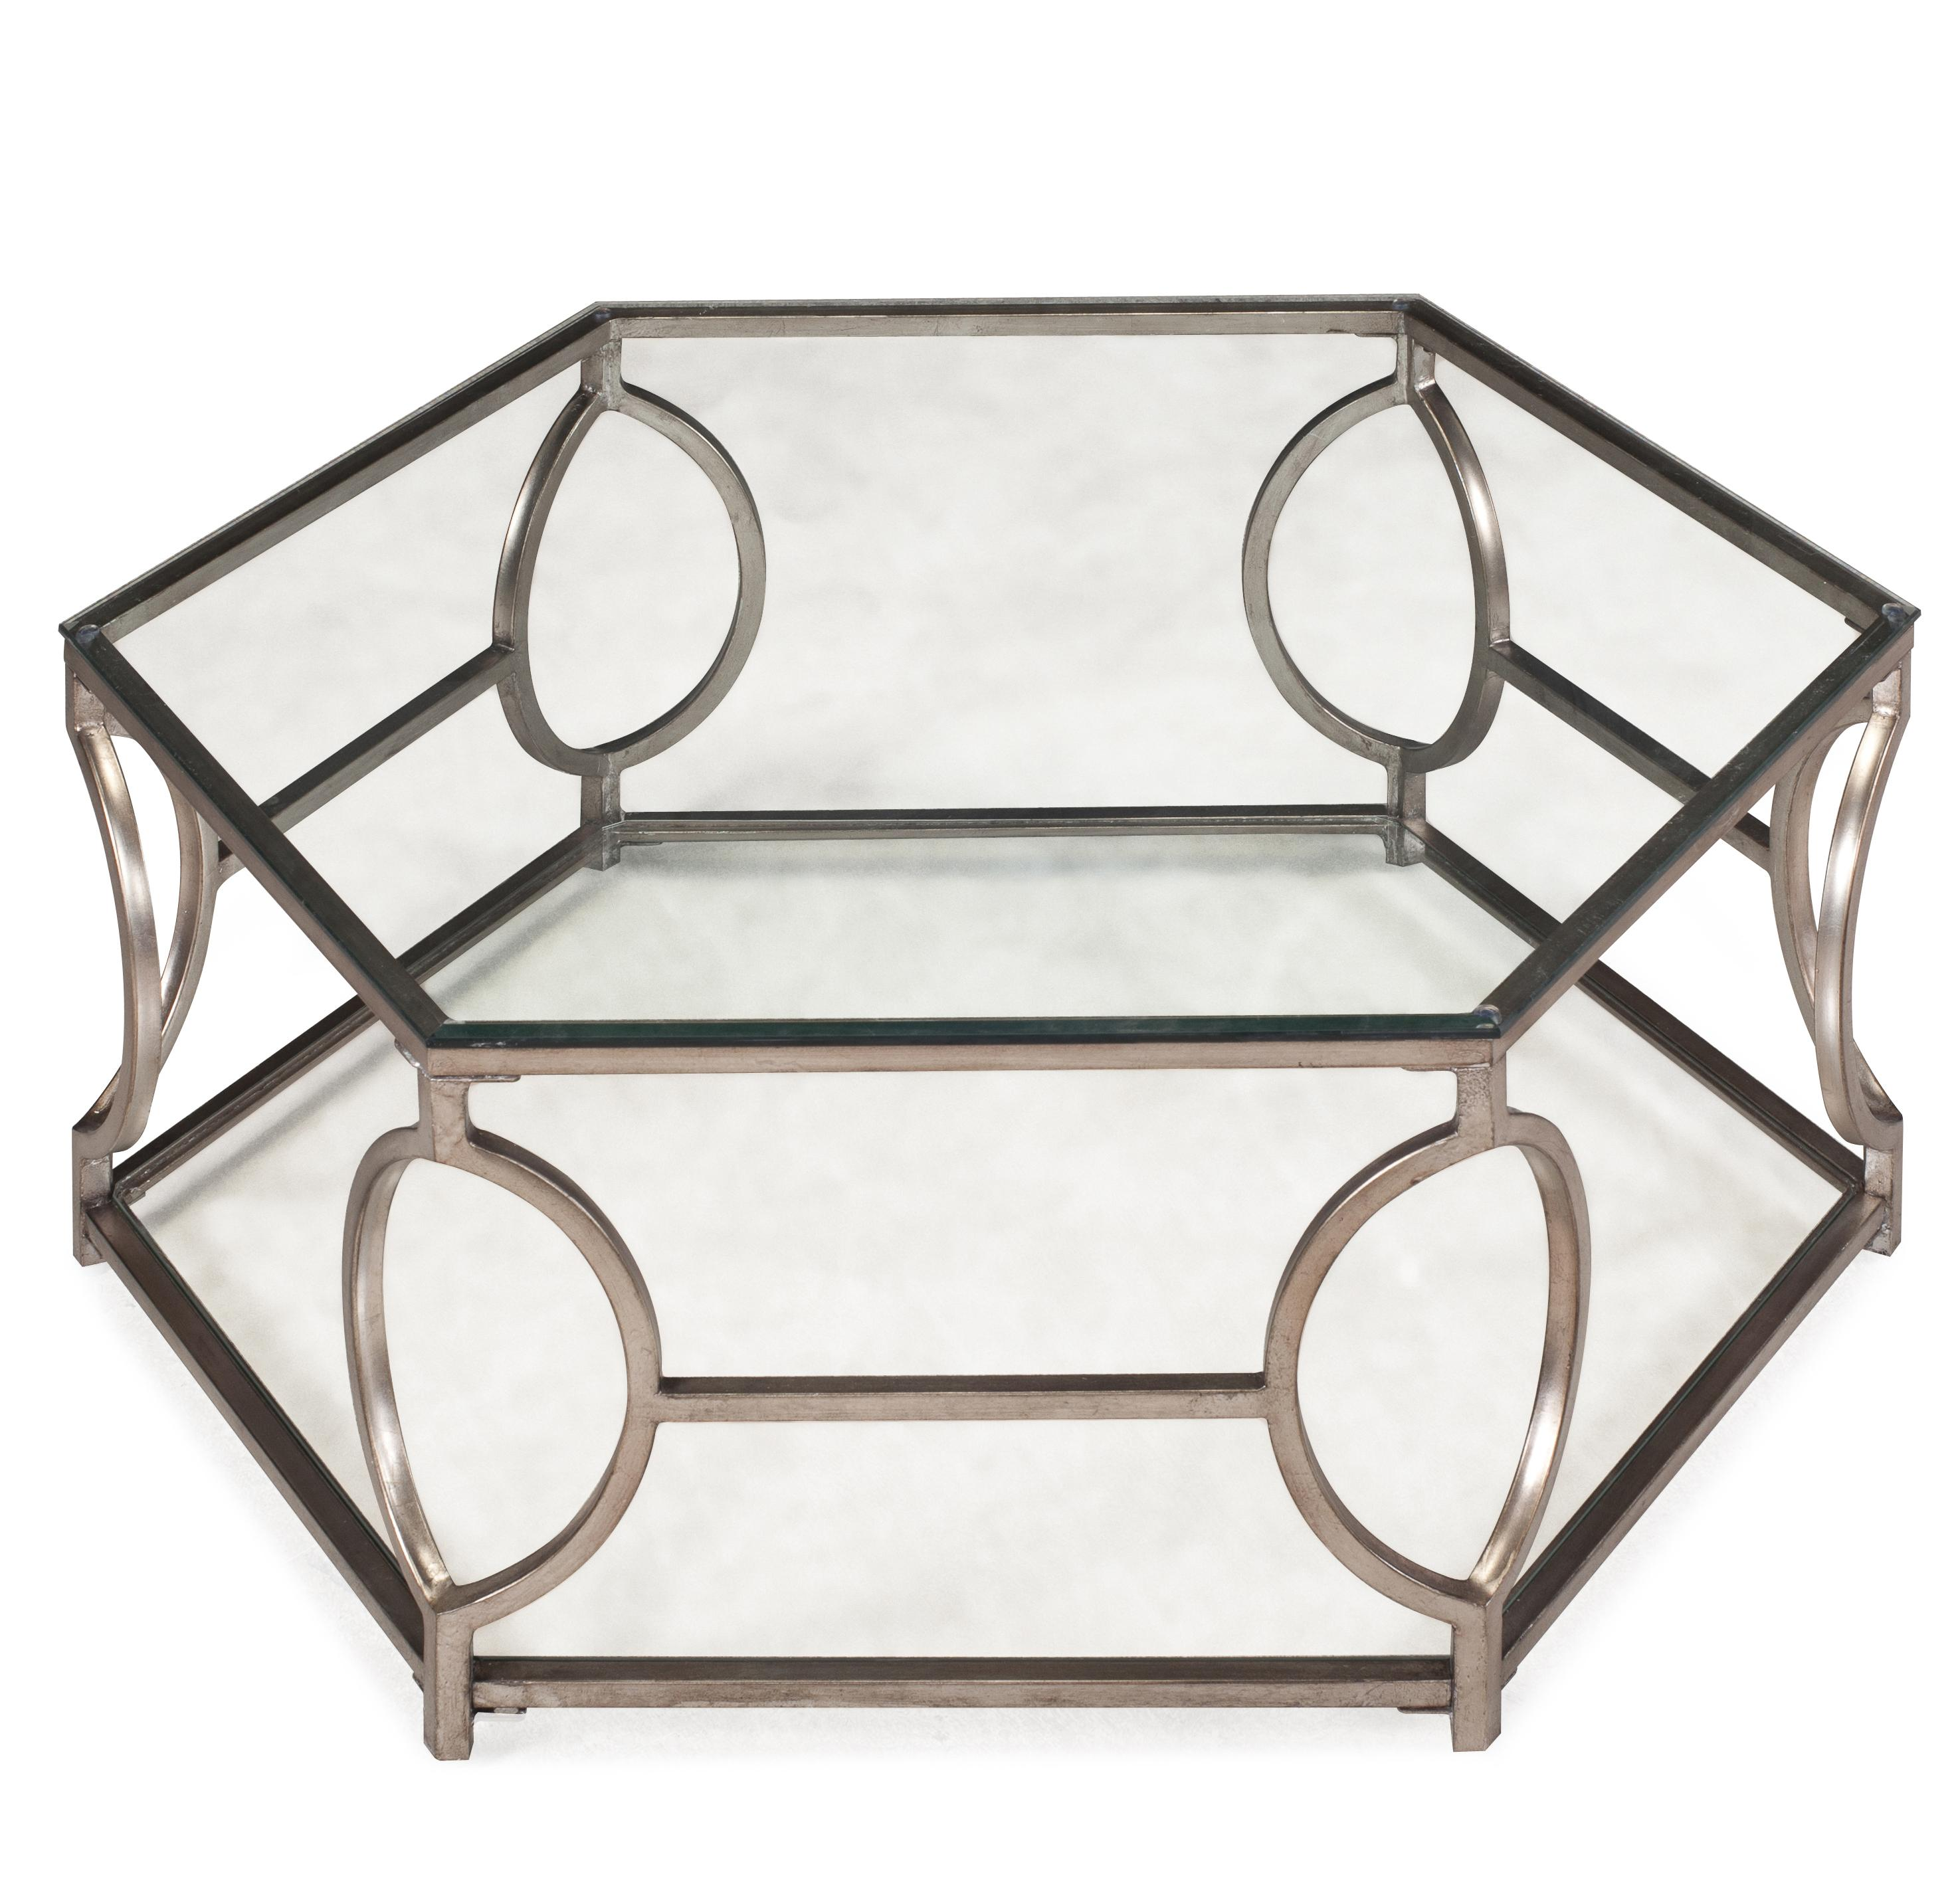 Magnussen Home Nevelson Hexagonal Cocktail Table - Item Number: T2060-48B+48T